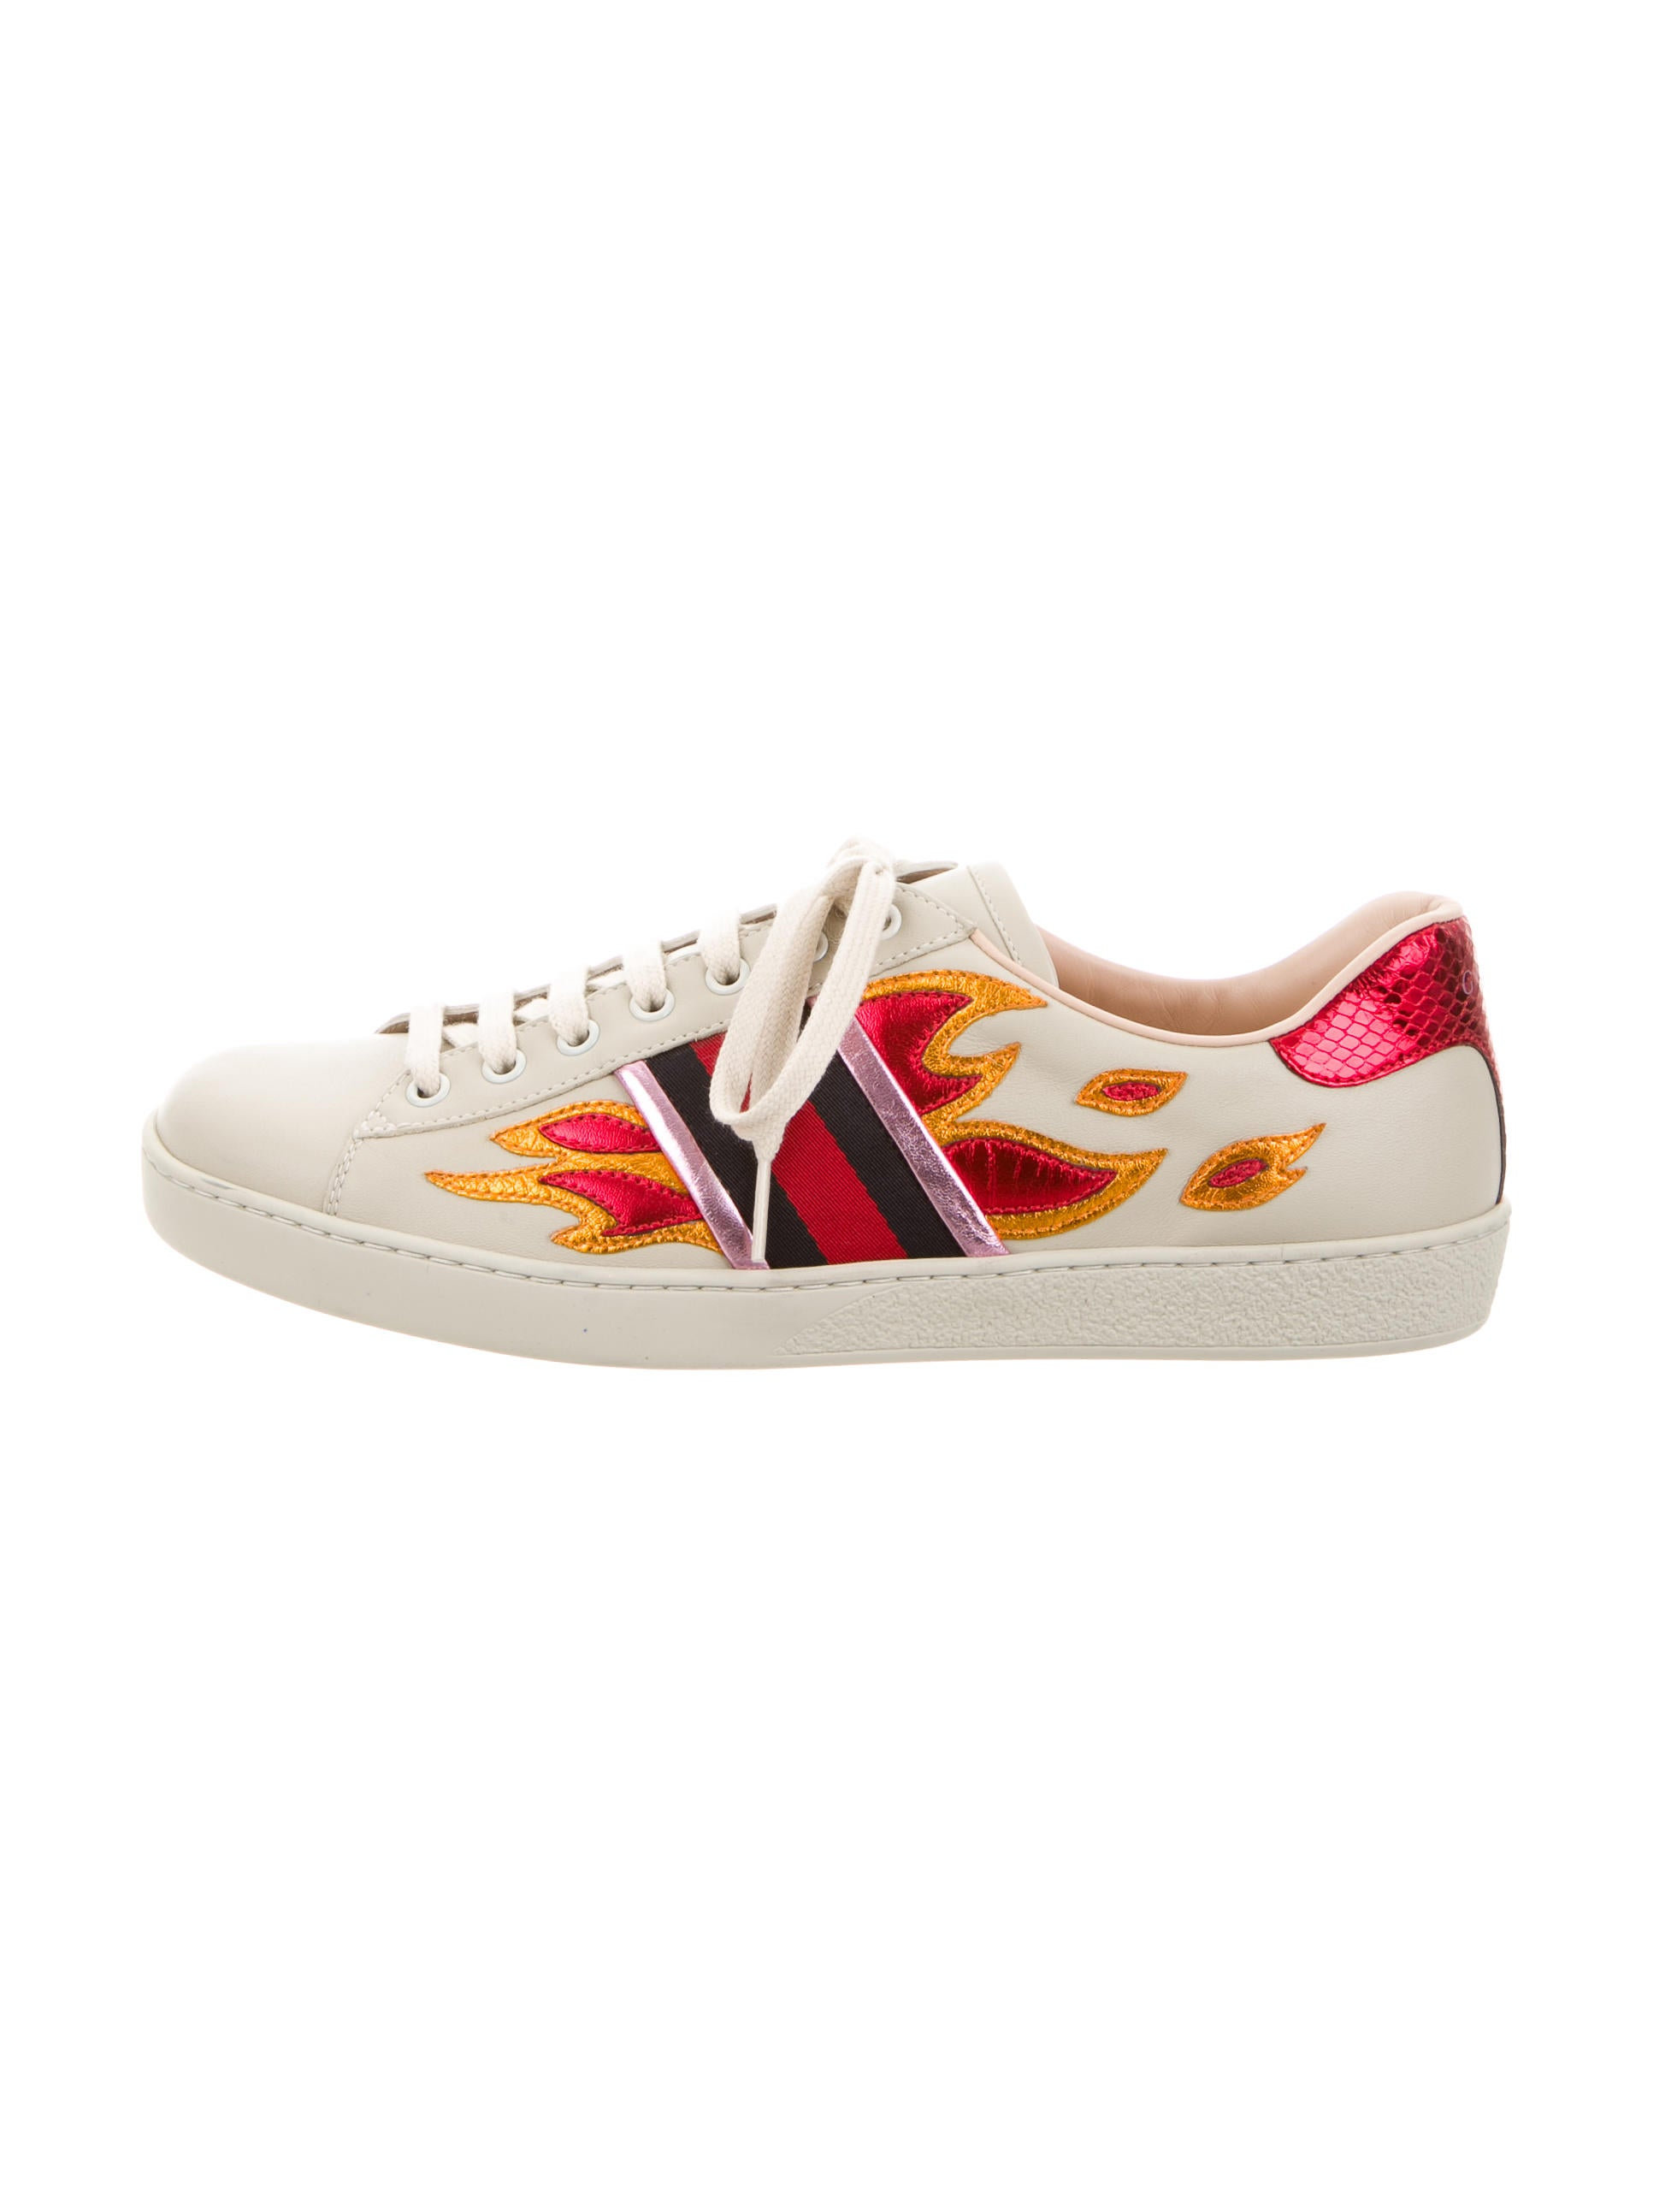 3c8d4c5df Gucci 2016 Ace Flame Low-Top Sneakers - Shoes - GUC104401 | The RealReal